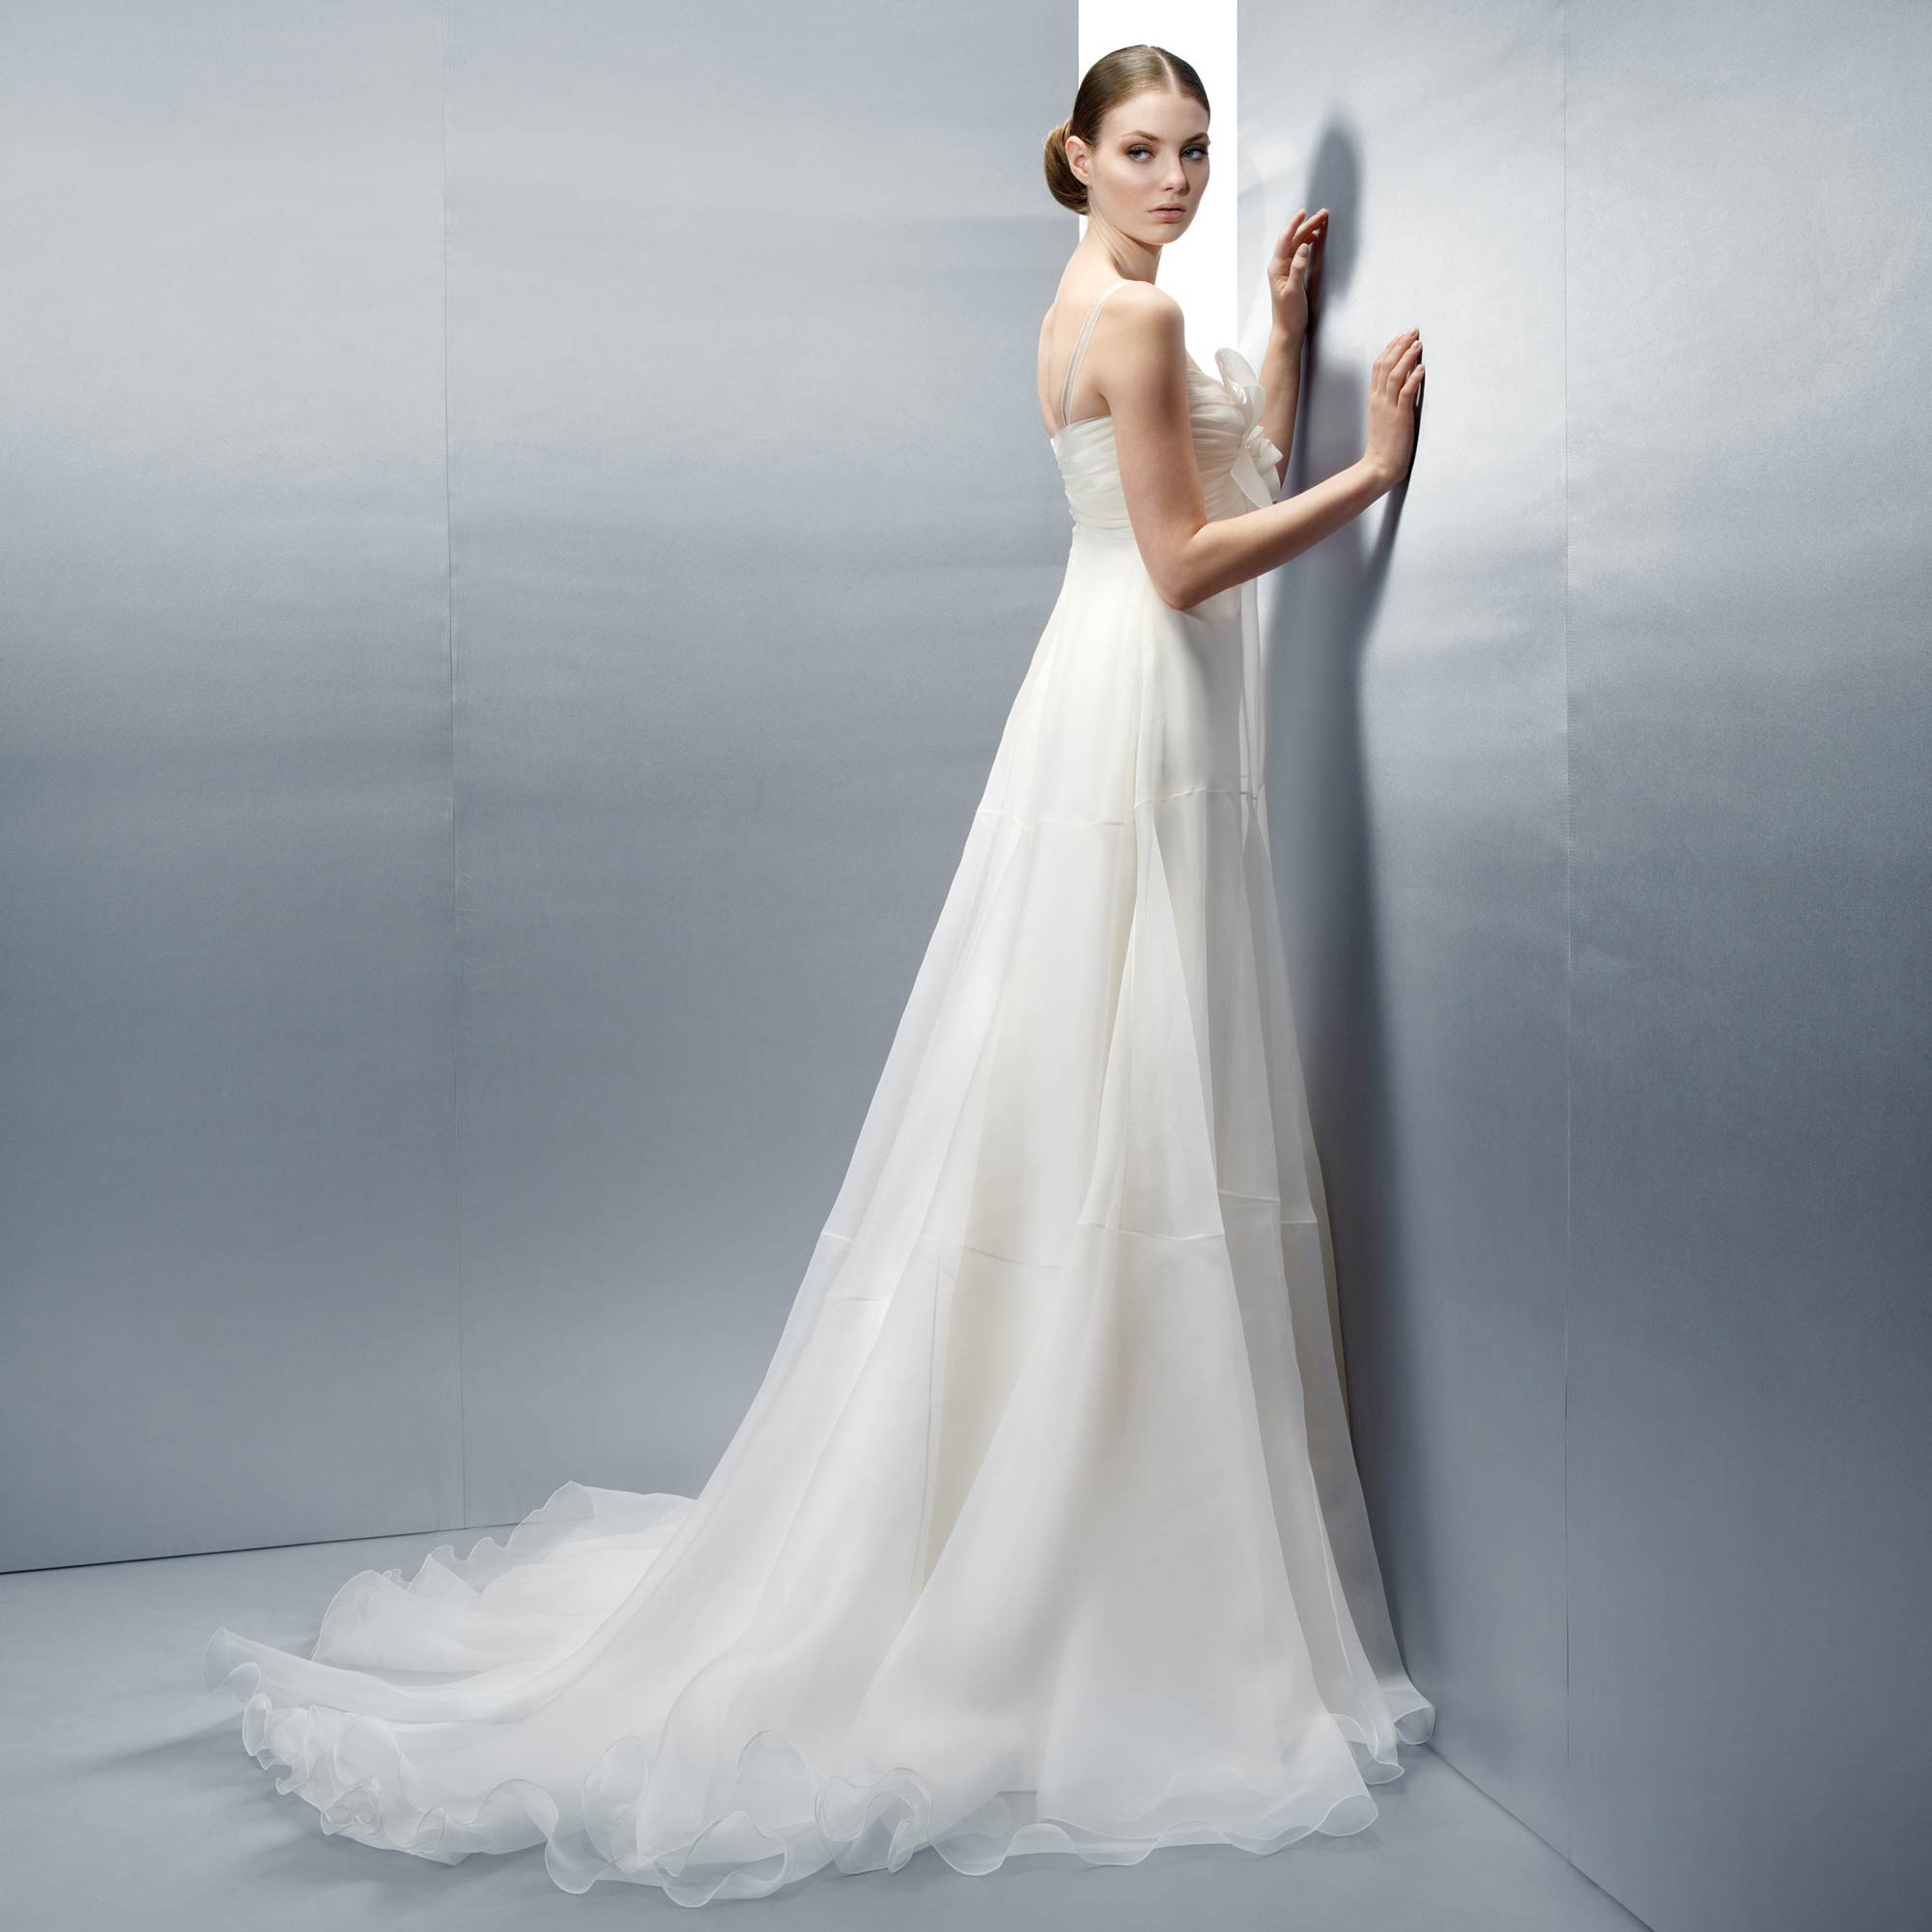 Jesus Peiro 2012 Spring Summer Bridal Collection | The FashionBrides